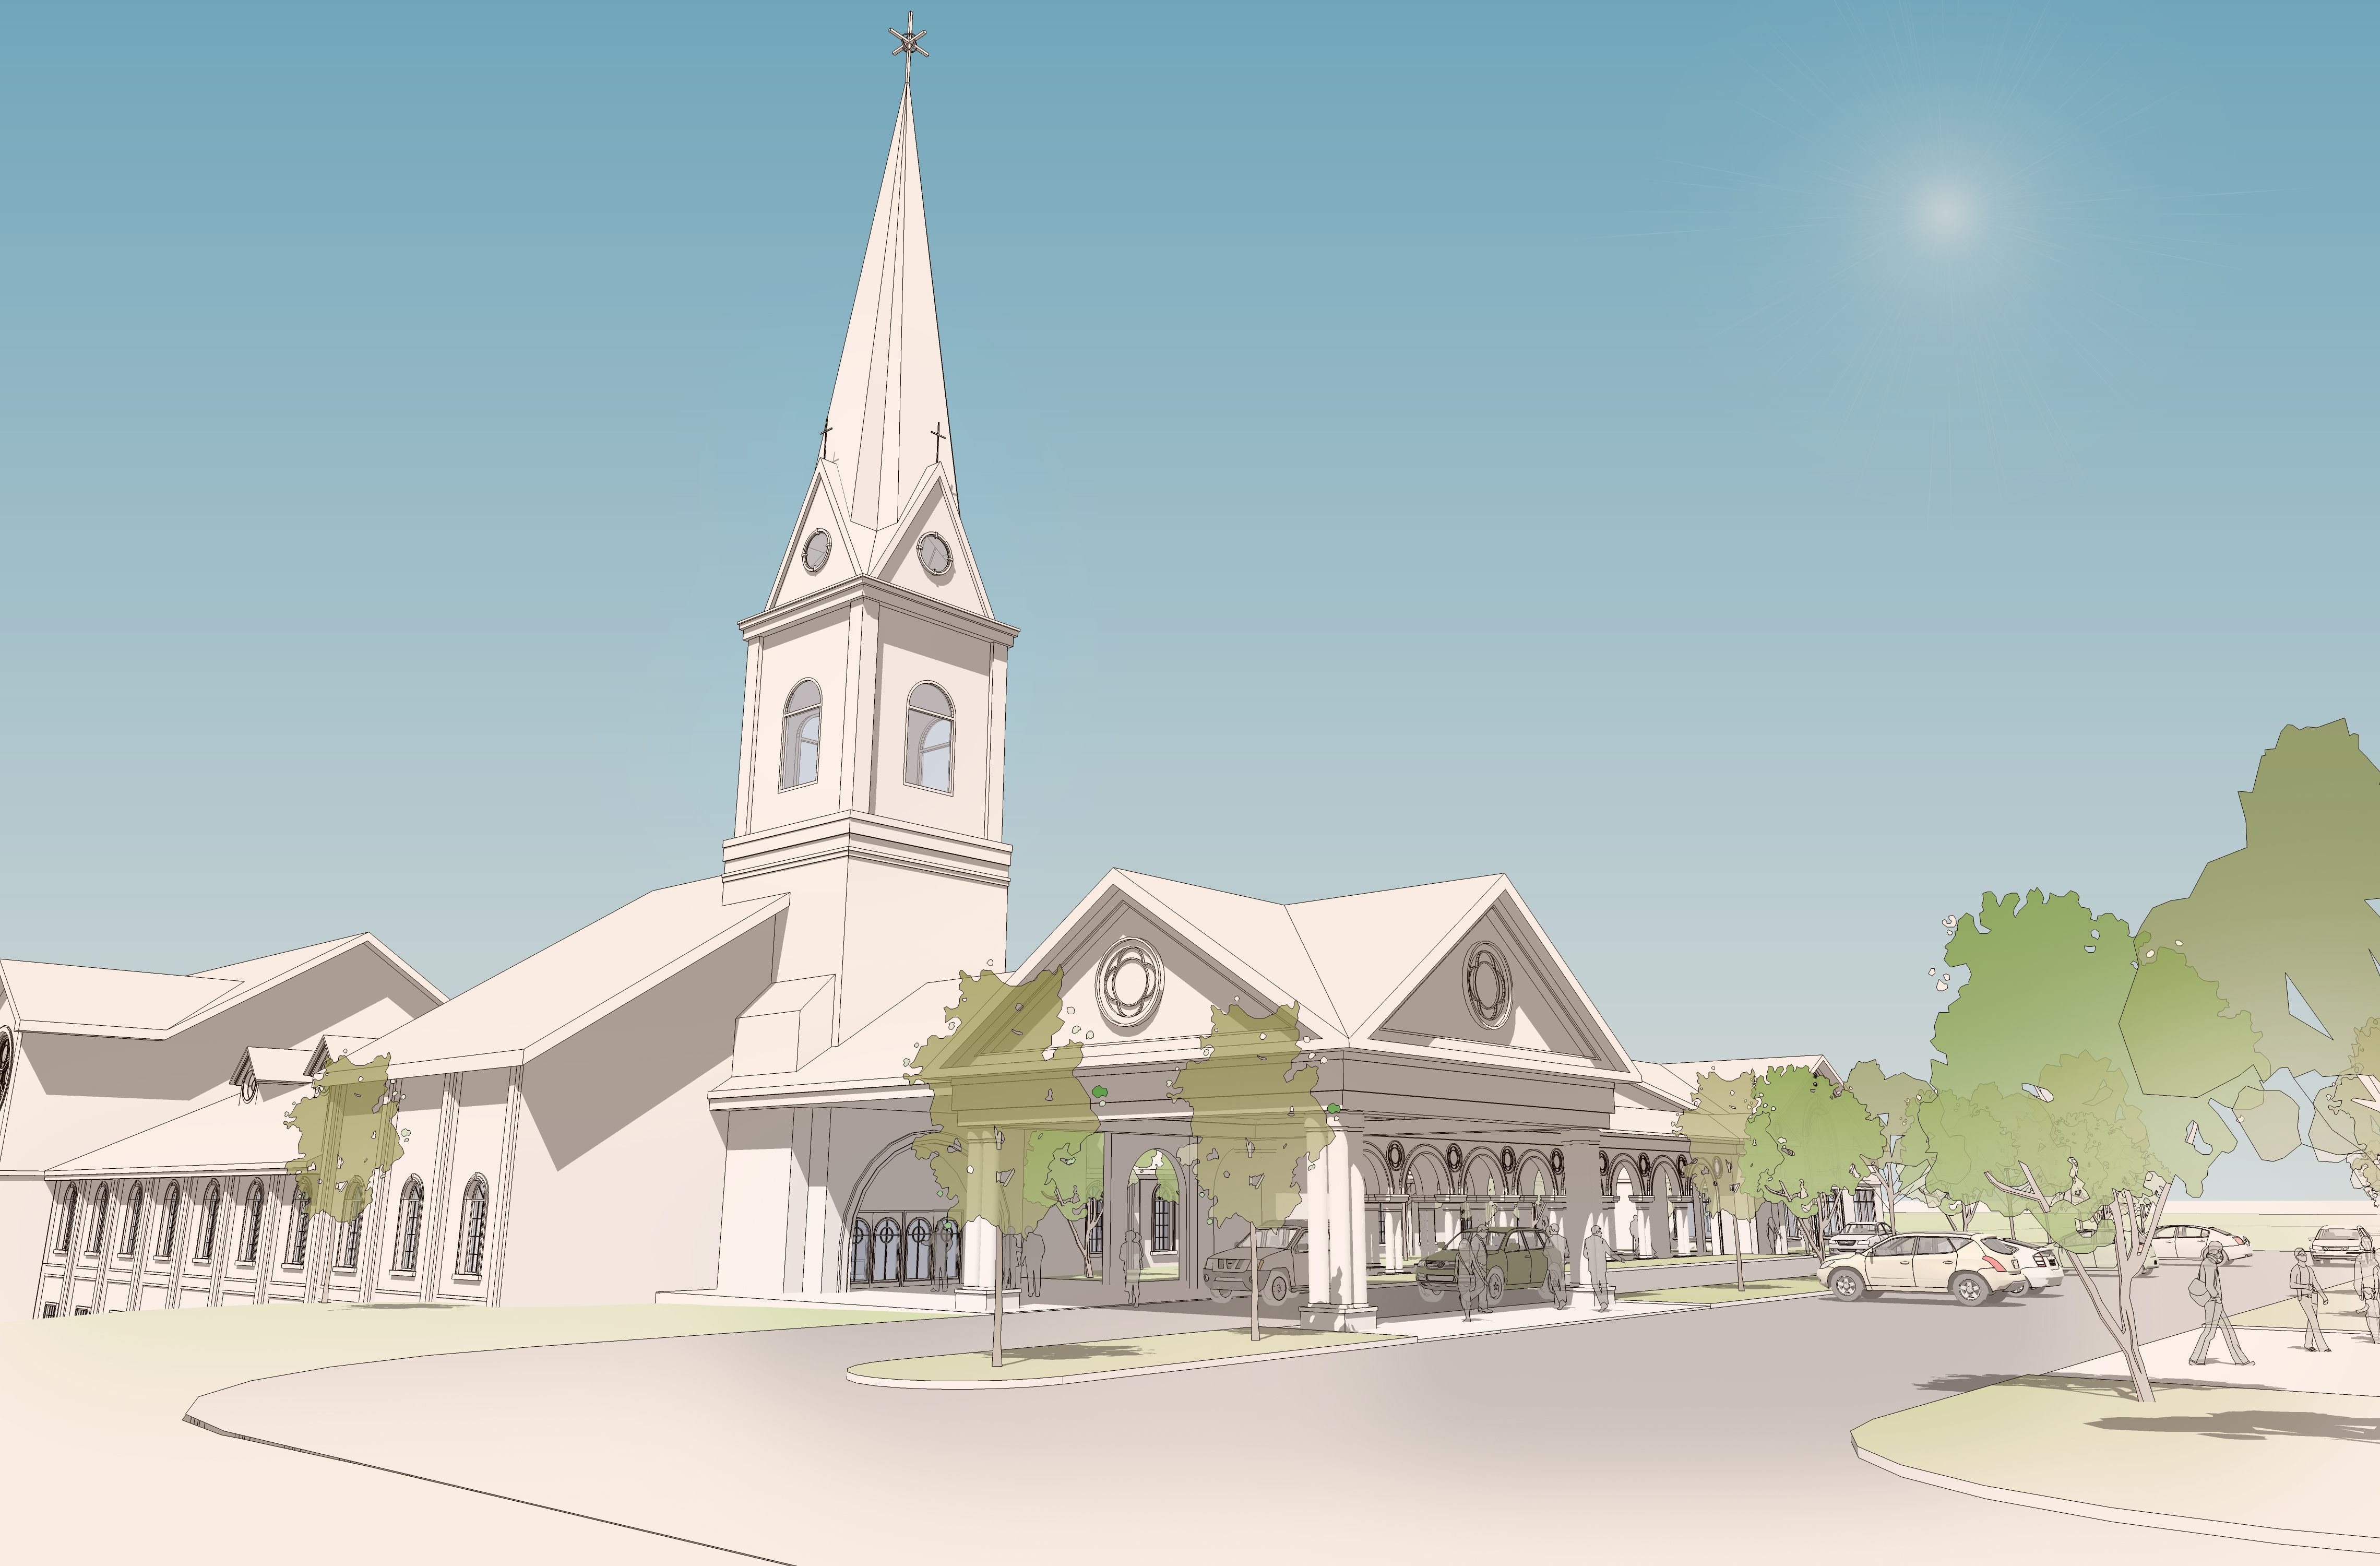 This Is A Traditional Church Concept That Features A Covered Vehicular Drop Off Canopy For Two Cars Wide Small Porches Porch Design Small Front Porches Designs